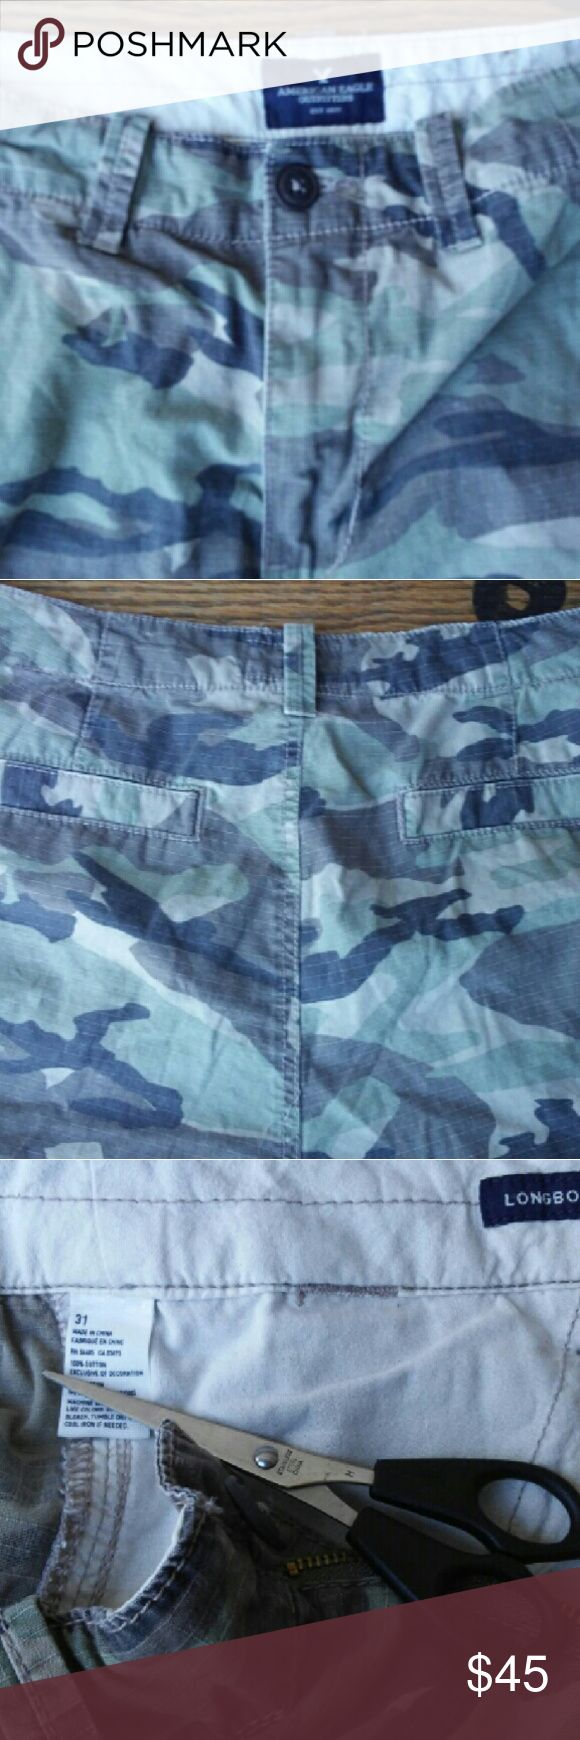 American Eagle Camo Cargo Shorts size  31 Size 31 camo vintage American Eagle Boardshorts American Eagle Outfitters Shorts Cargos